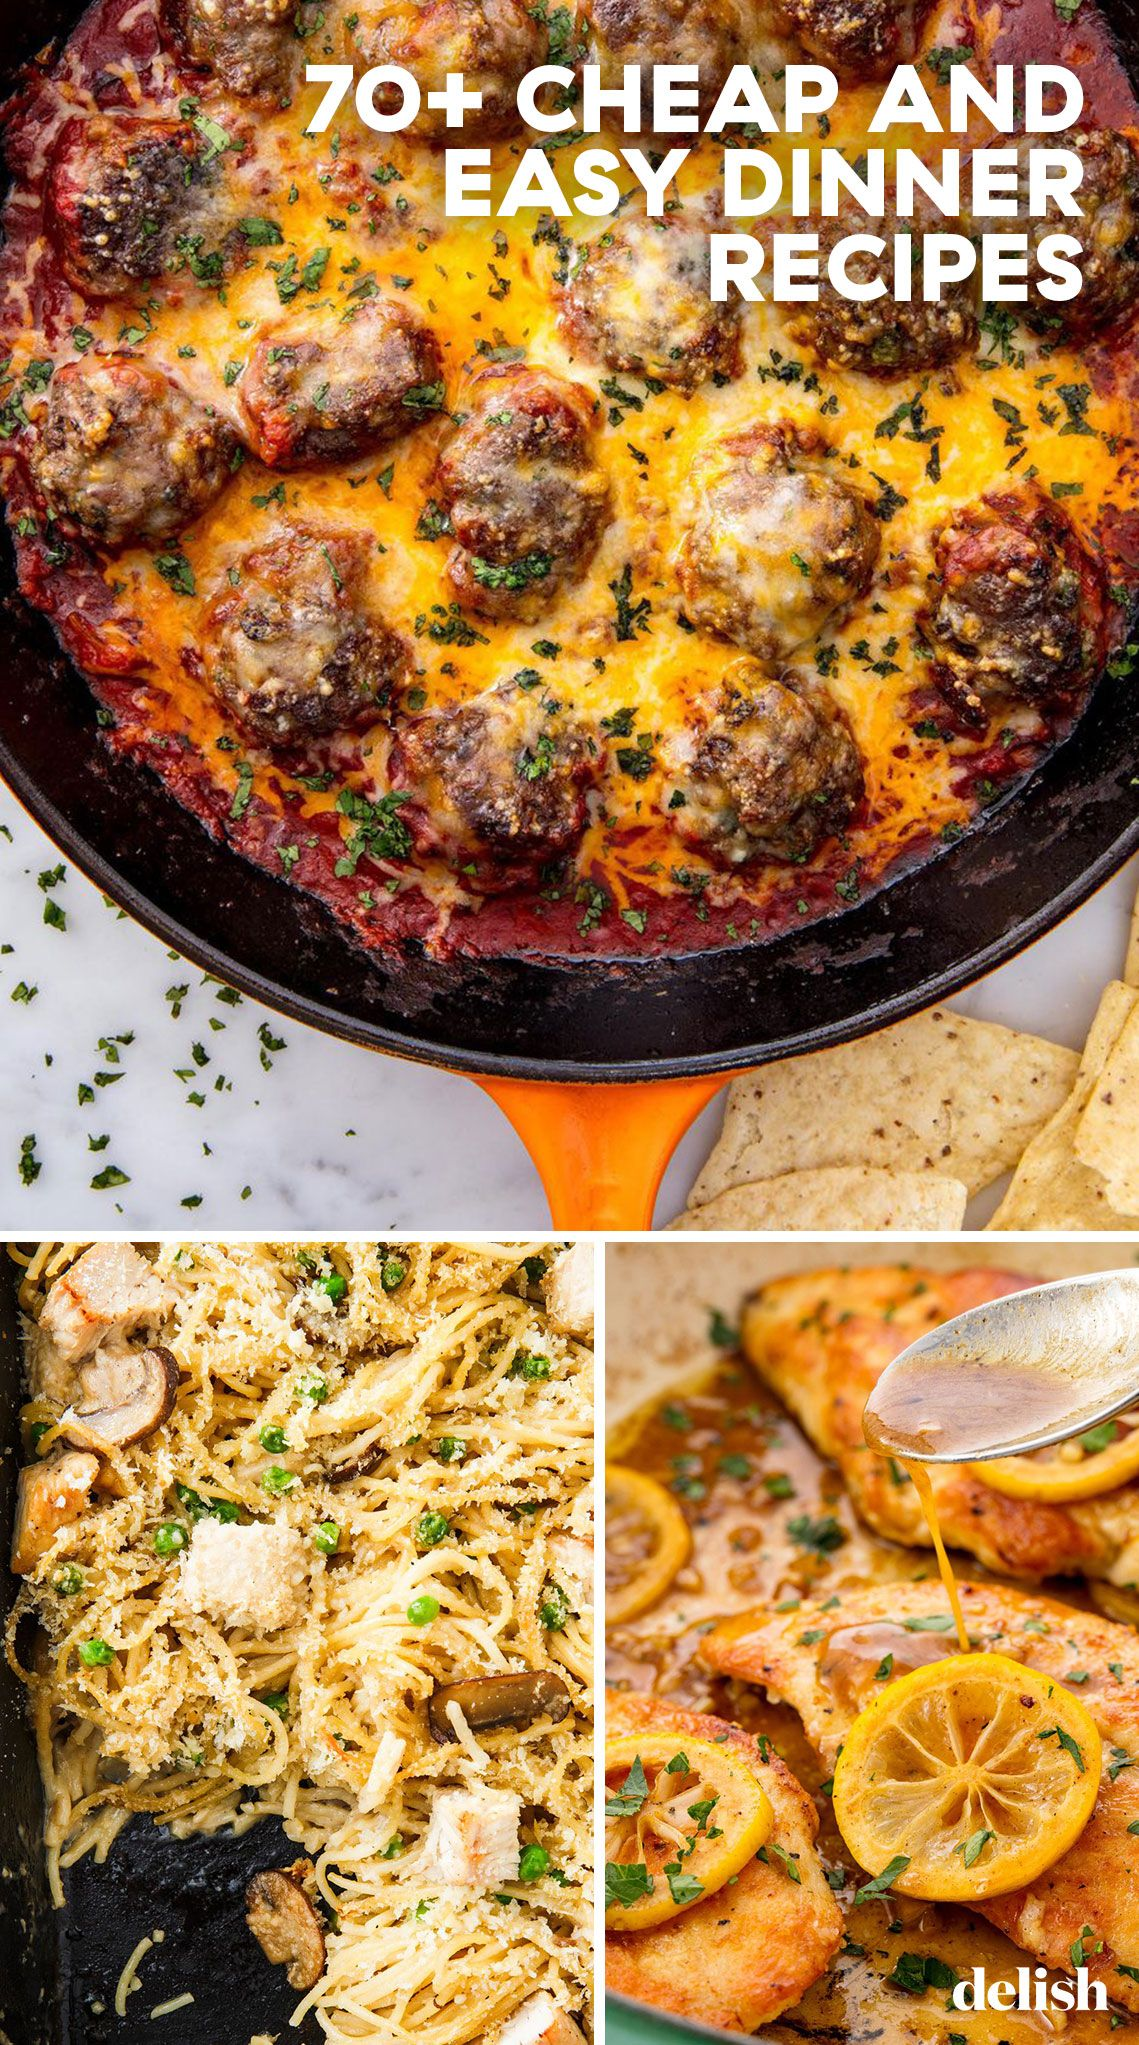 70+ Easy Cheap Dinner Recipes , Inexpensive Dinner Ideas